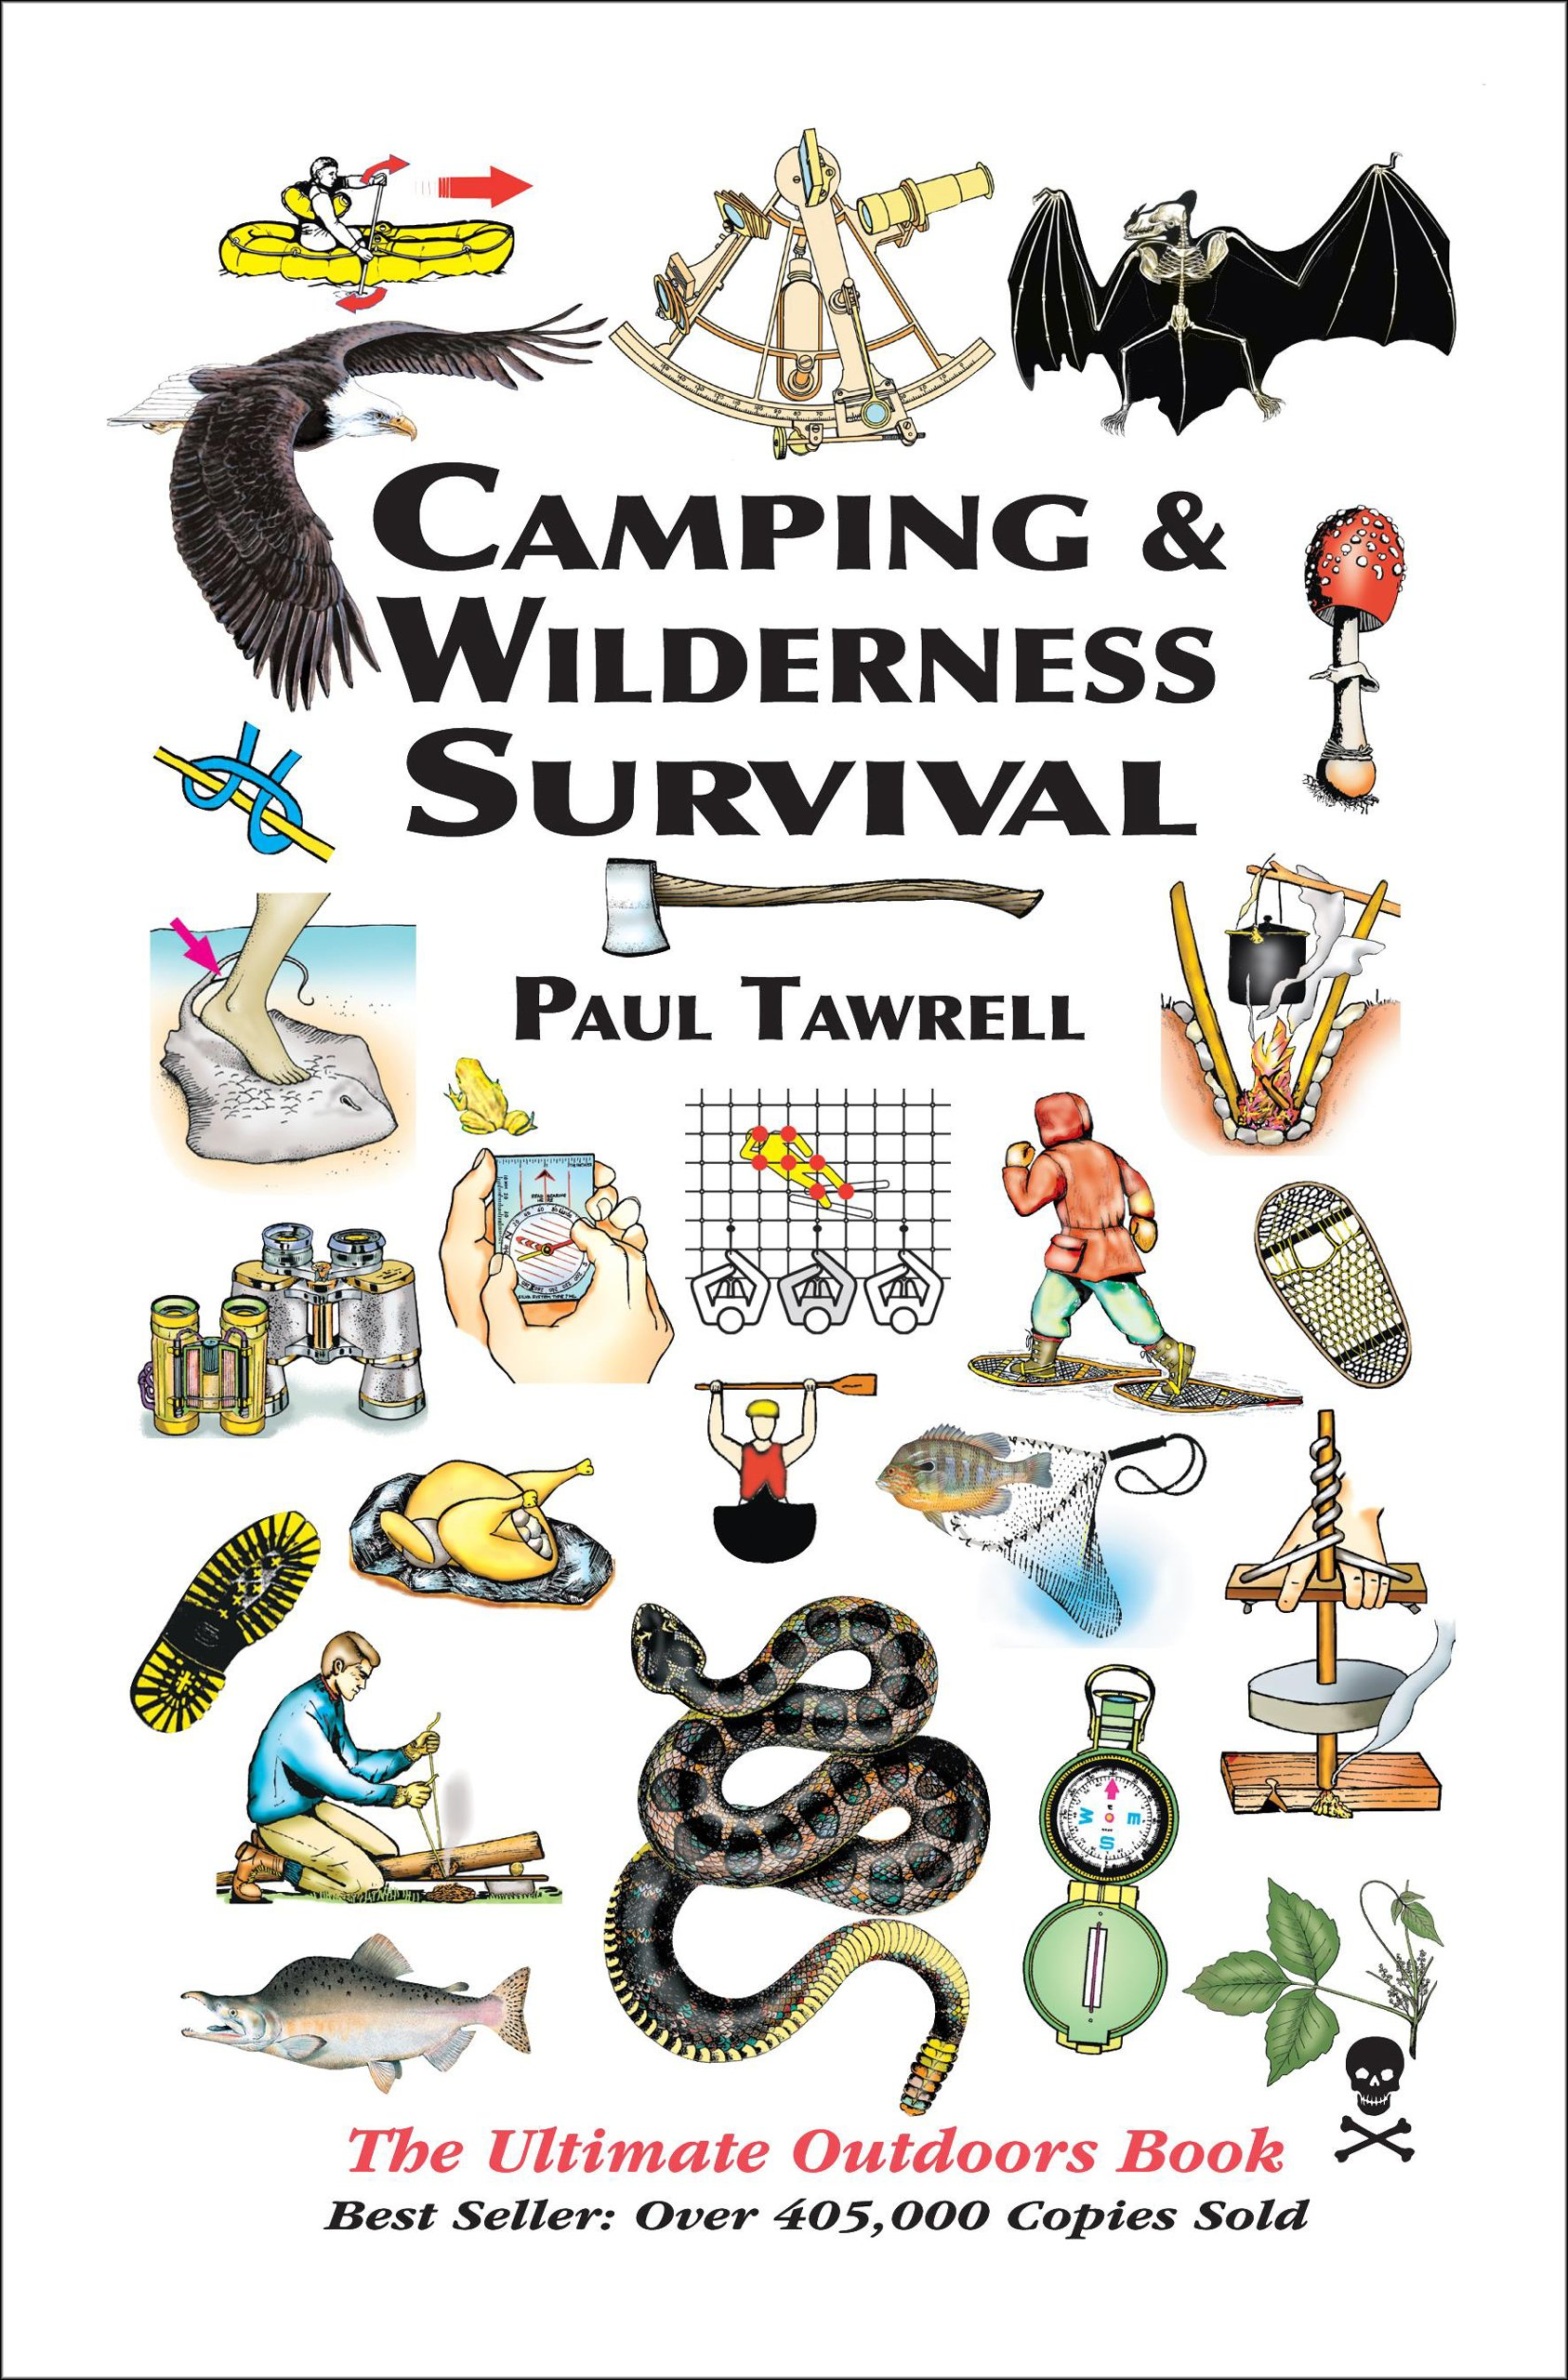 Camping & Wilderness Survival